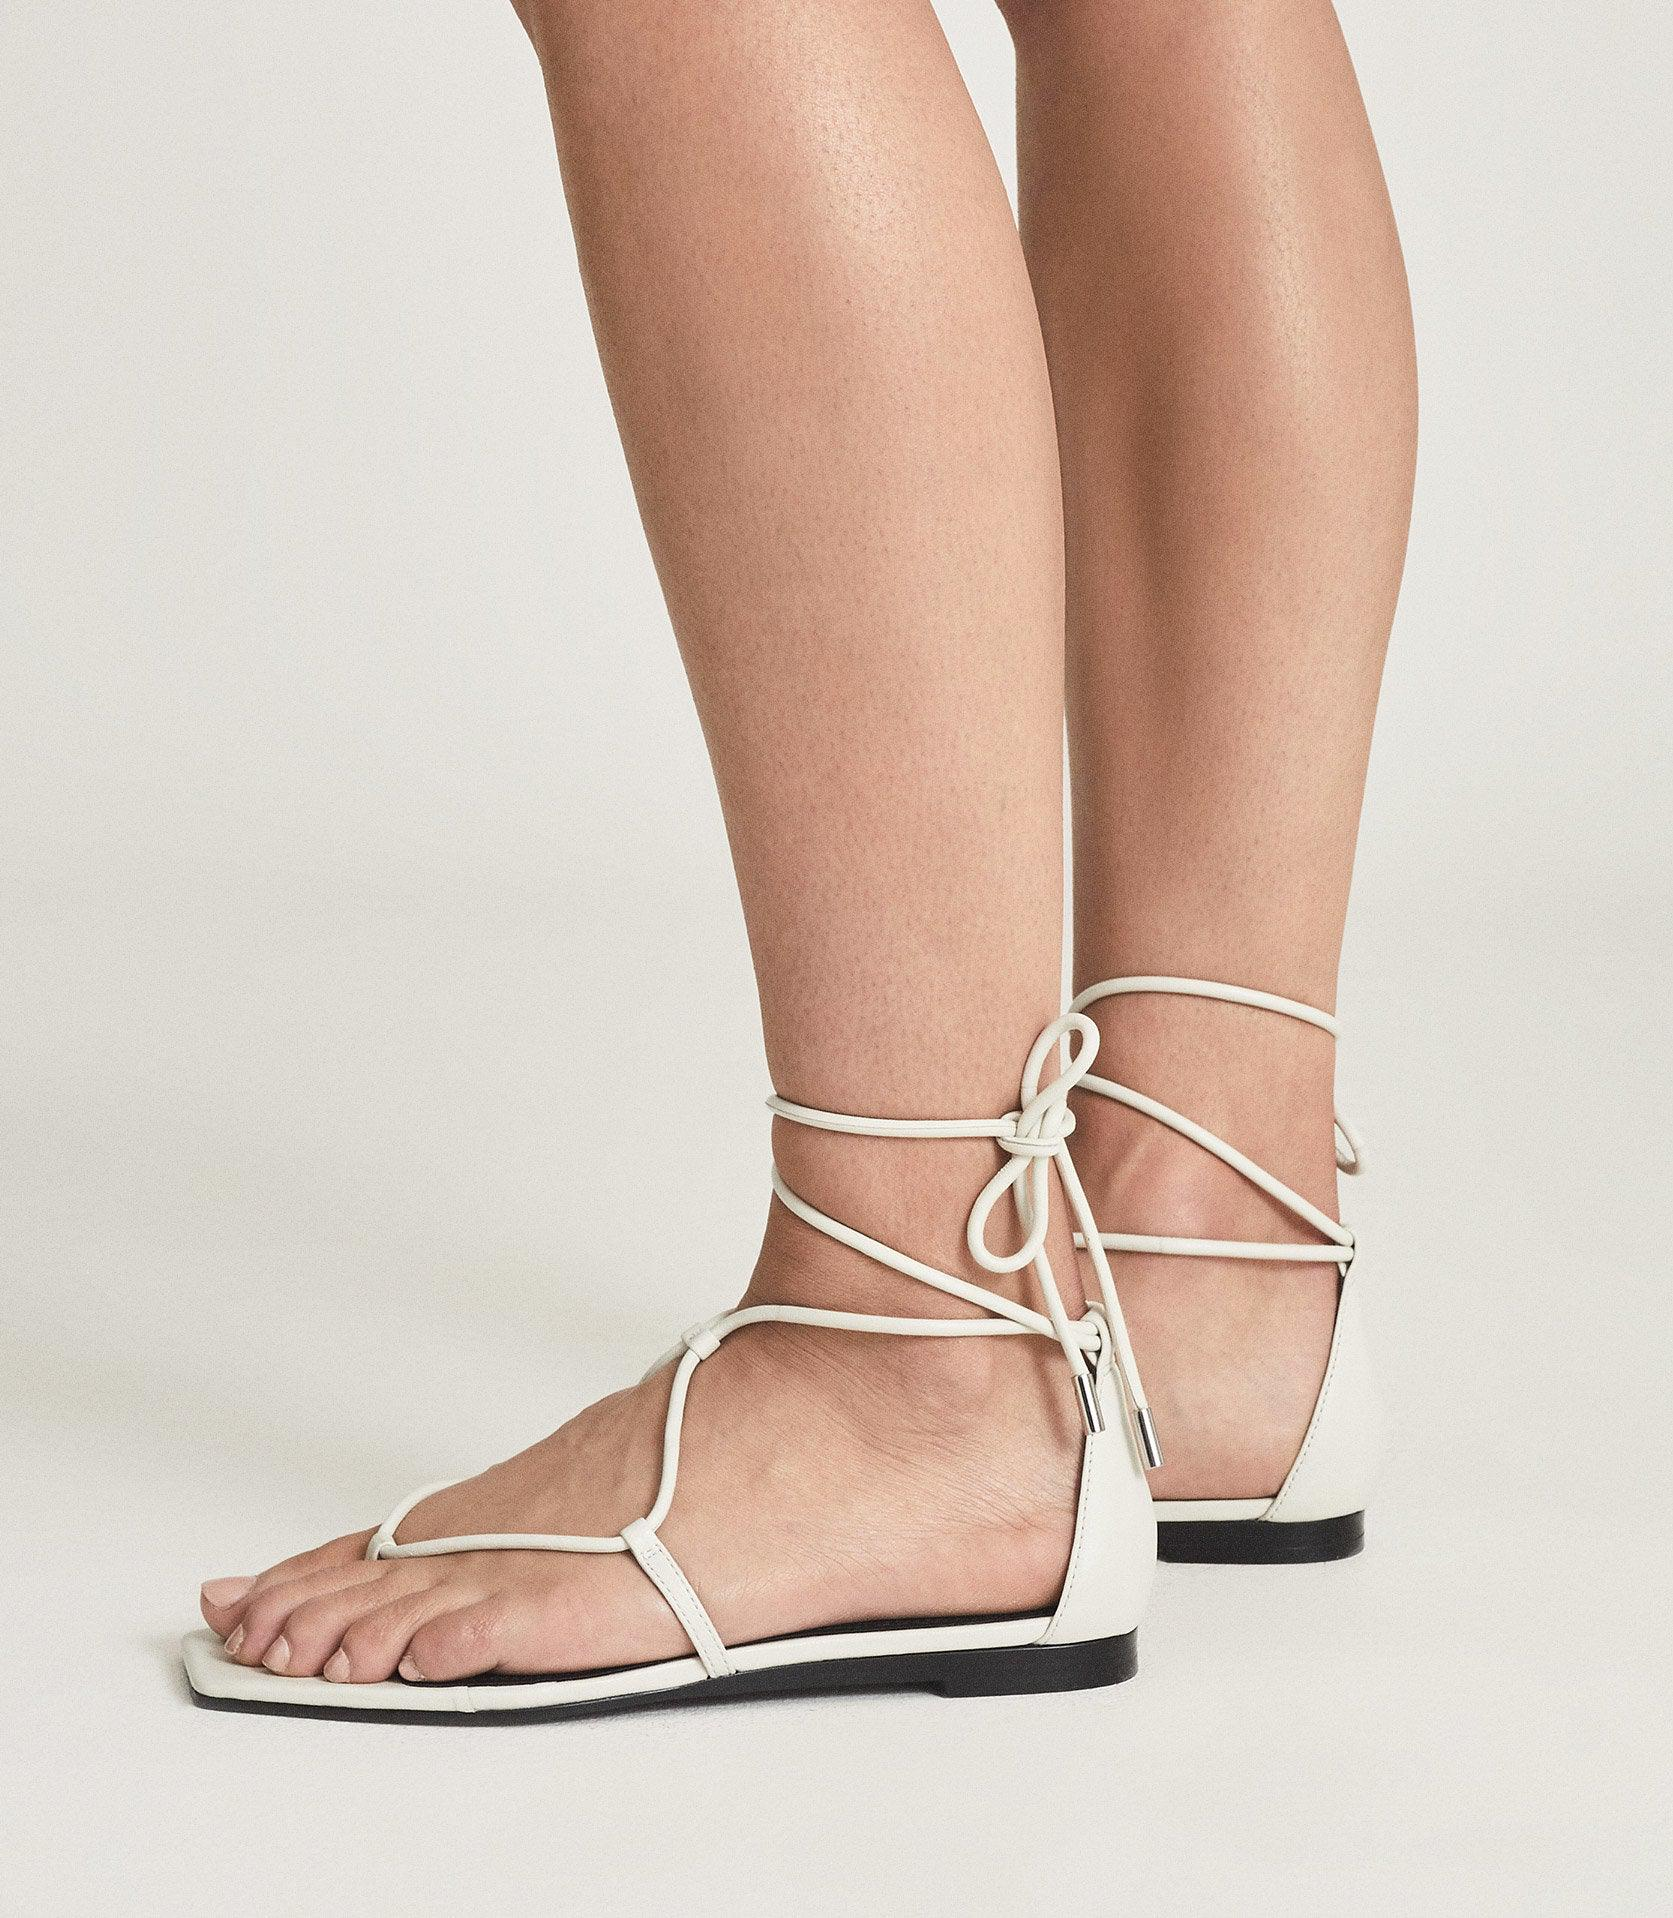 KALI FLAT - LEATHER STRAPPY WRAP SANDALS 5